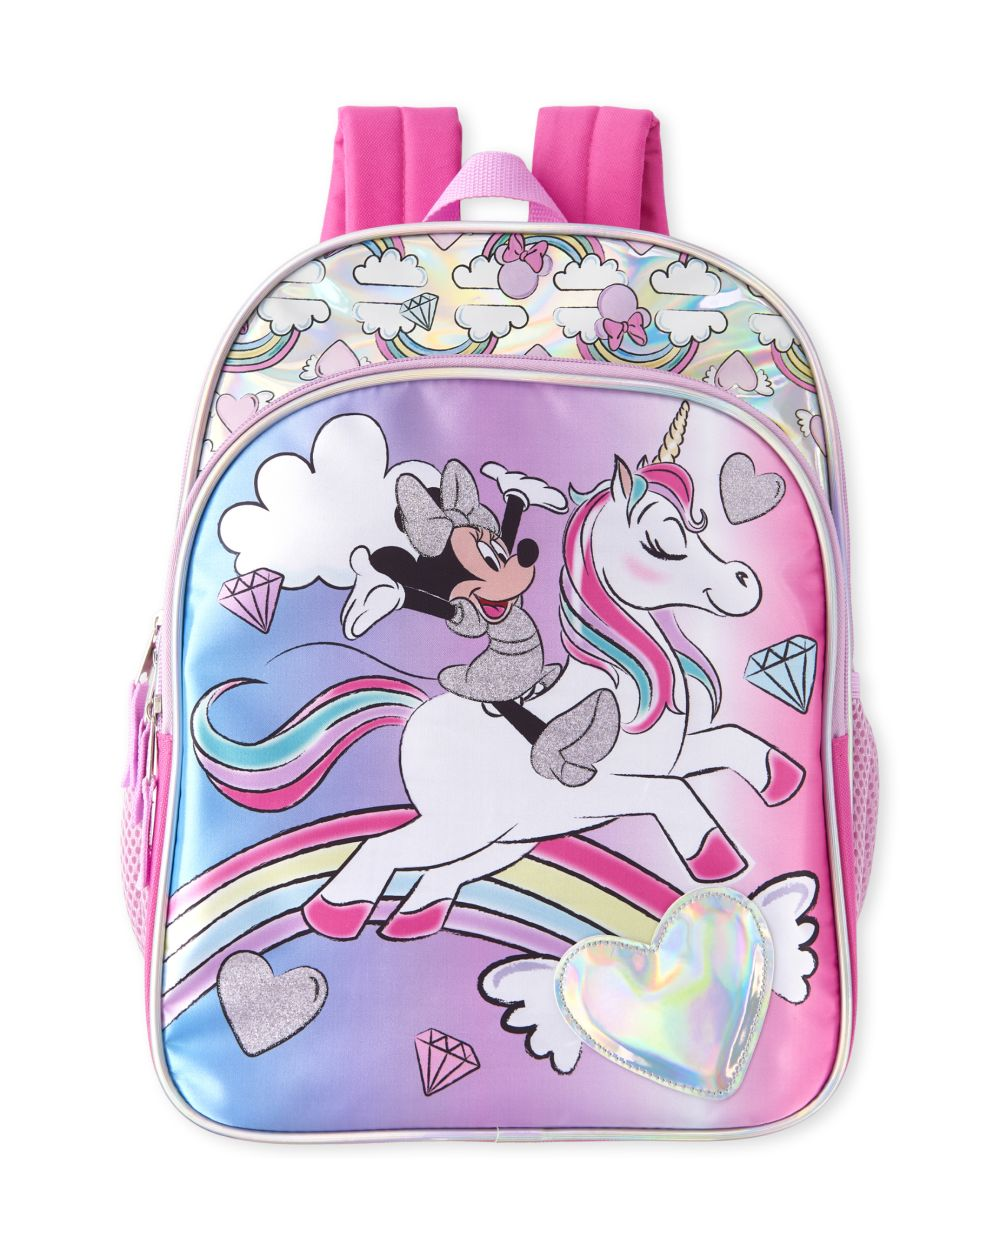 Toddler Girls Holographic Minnie Mouse Backpack